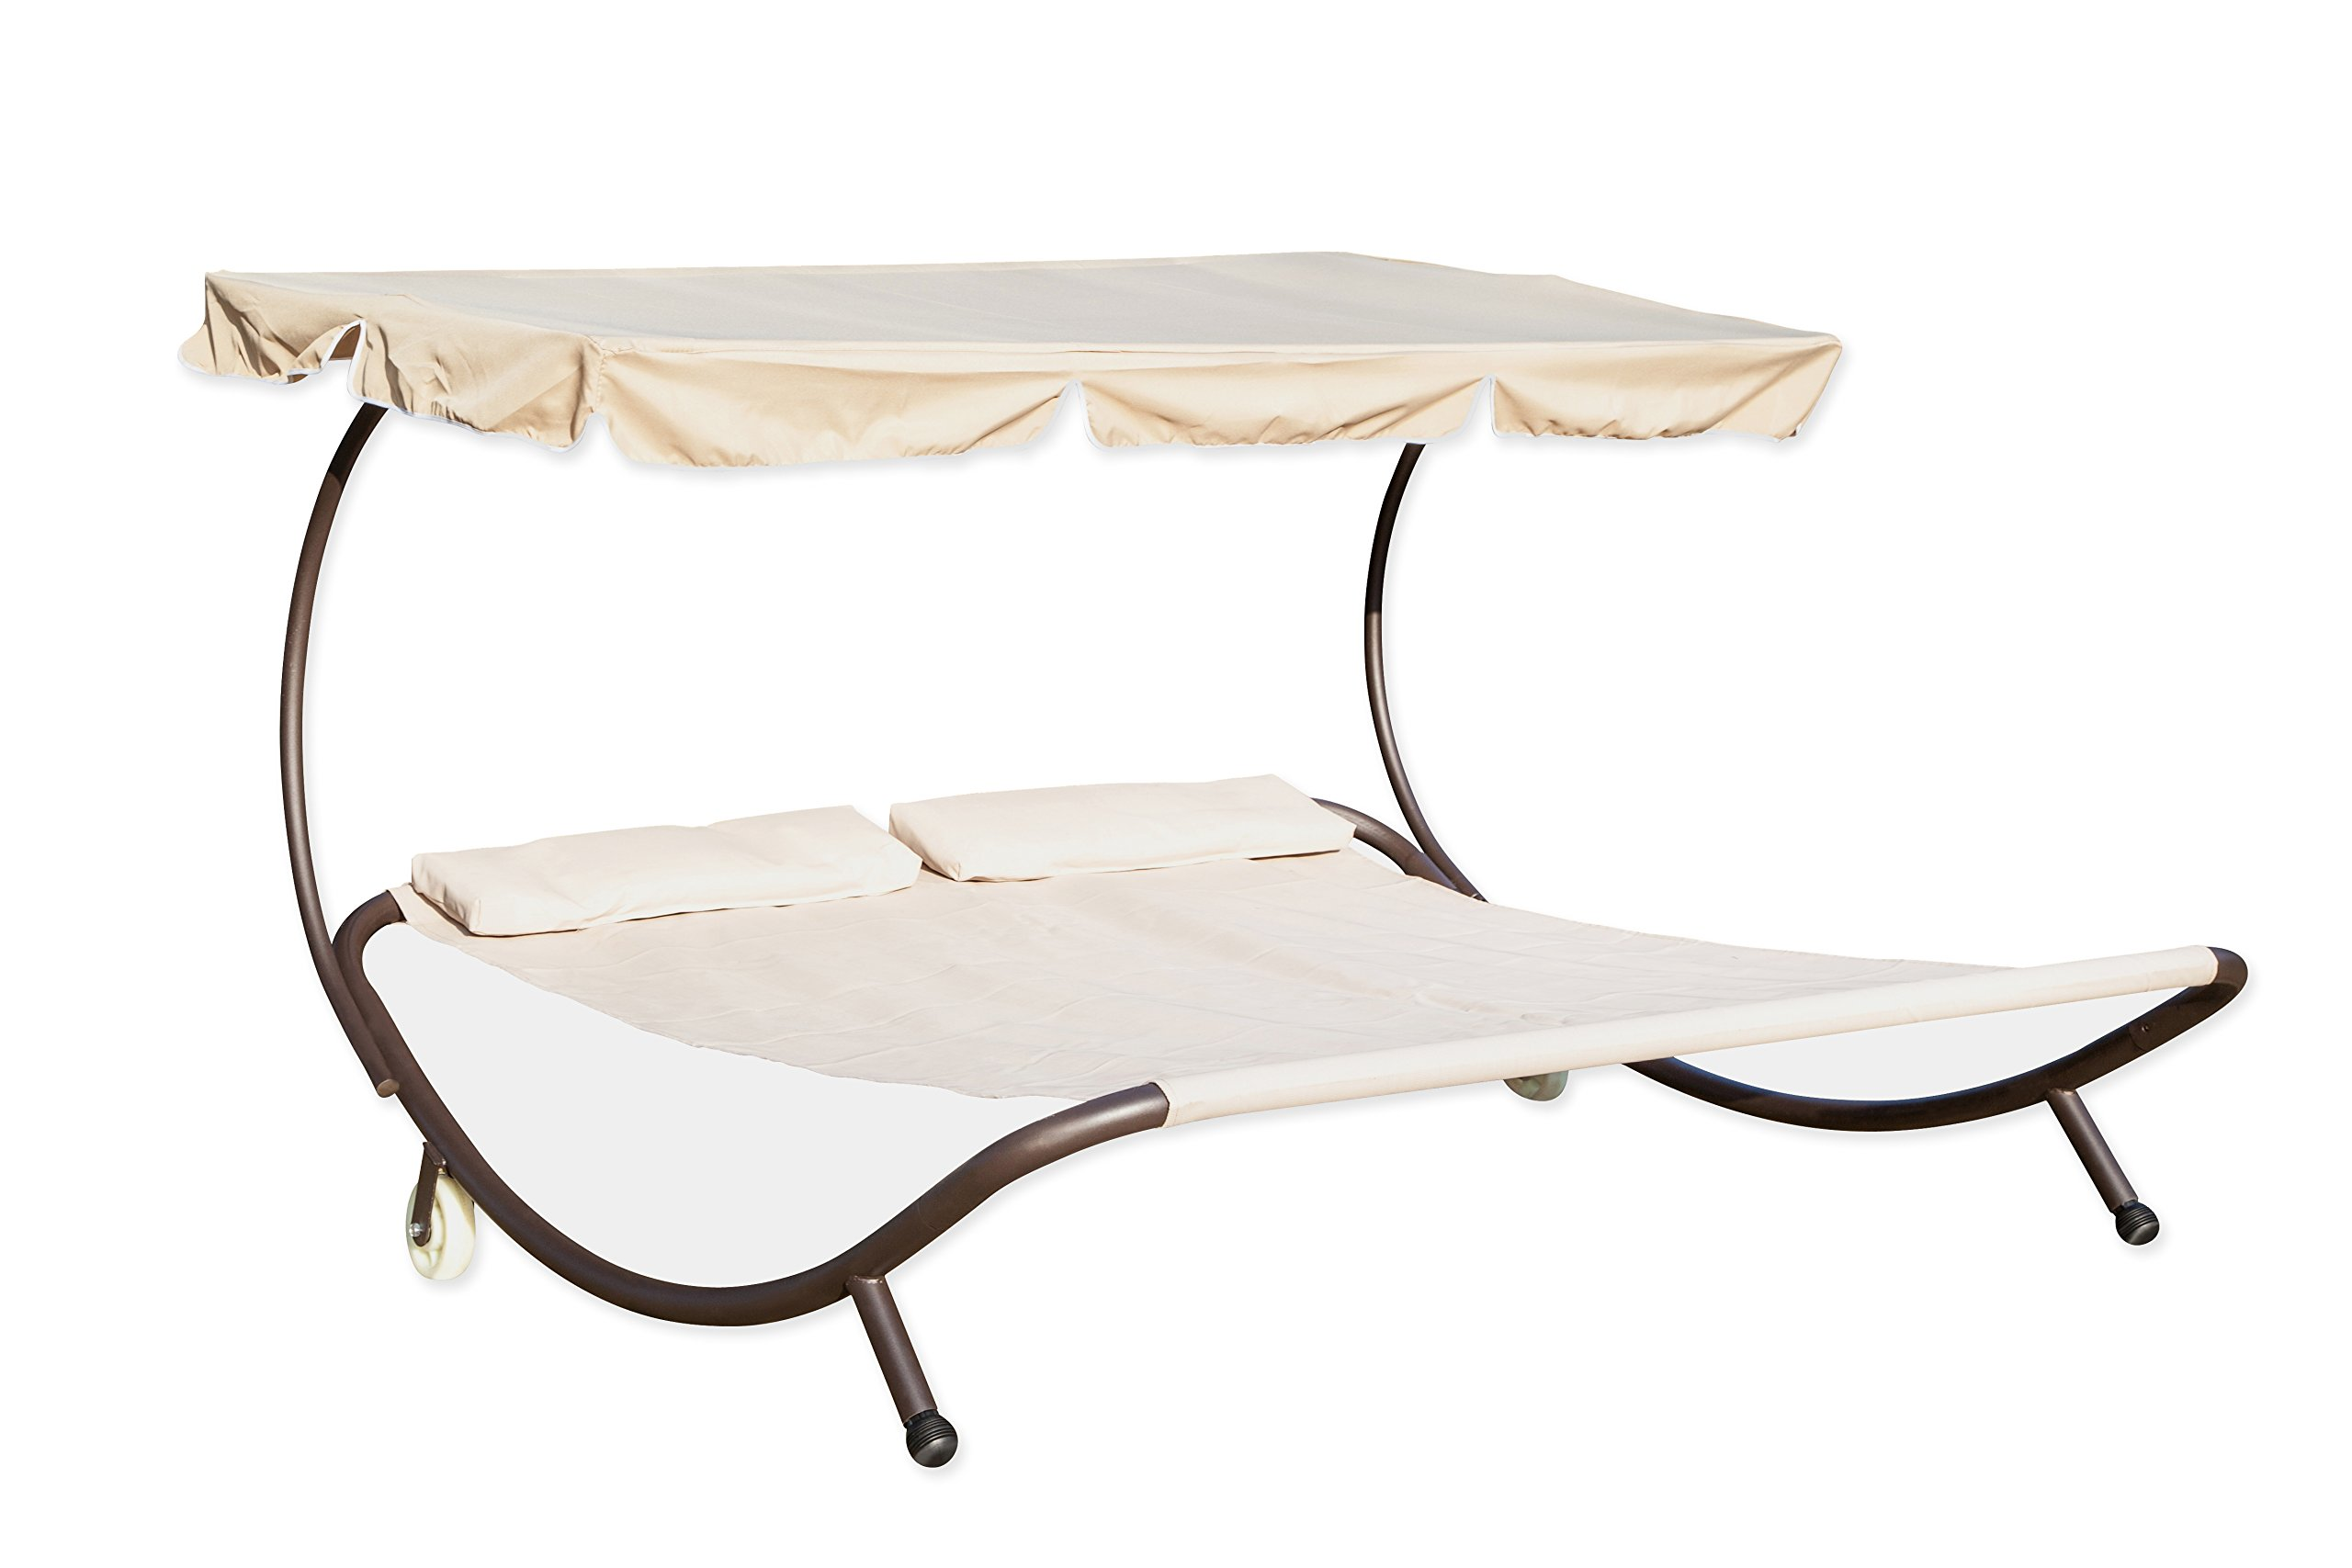 Double Hammock Bed Sunbed with Canopy by Trademark Innovations